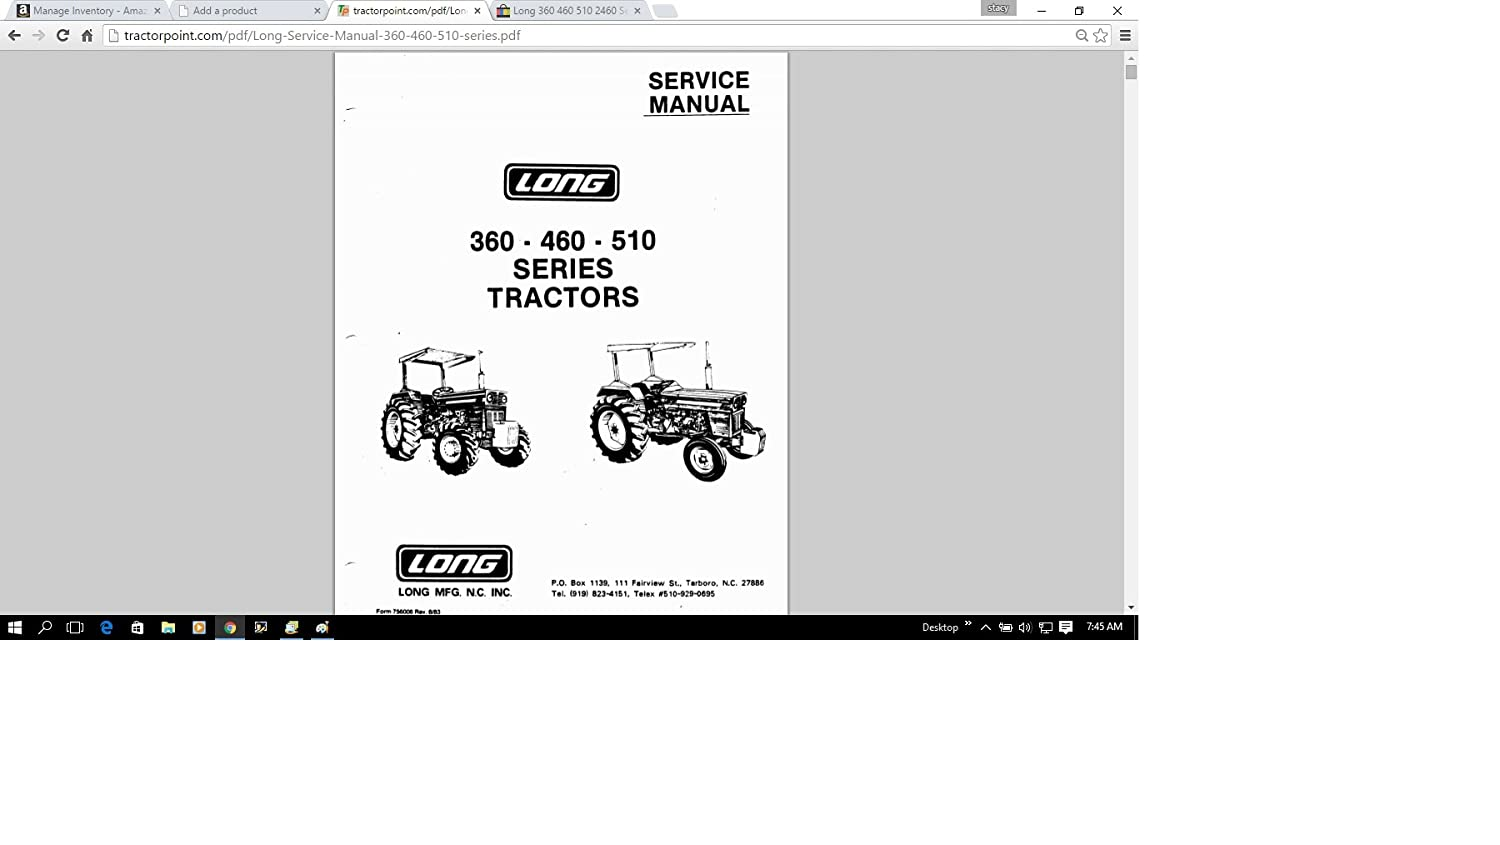 61Oci7aDUYL._SL1500_ amazon com long 360 460 510 2460 series tractor service repair long 2360 tractor wiring diagram at edmiracle.co